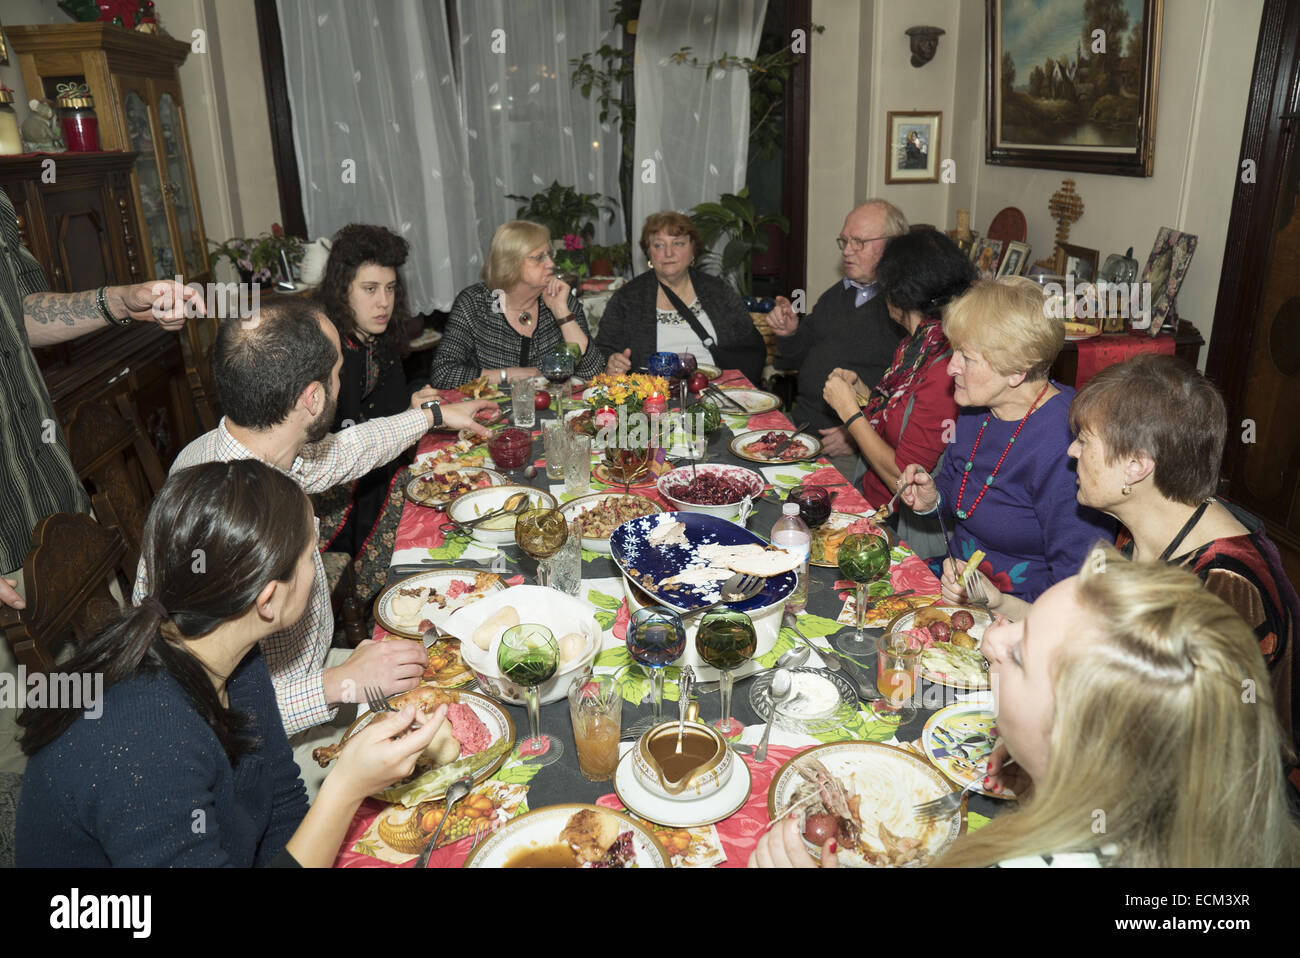 Polish American Thanksgiving dinner in Brooklyn, NY. - Stock Image